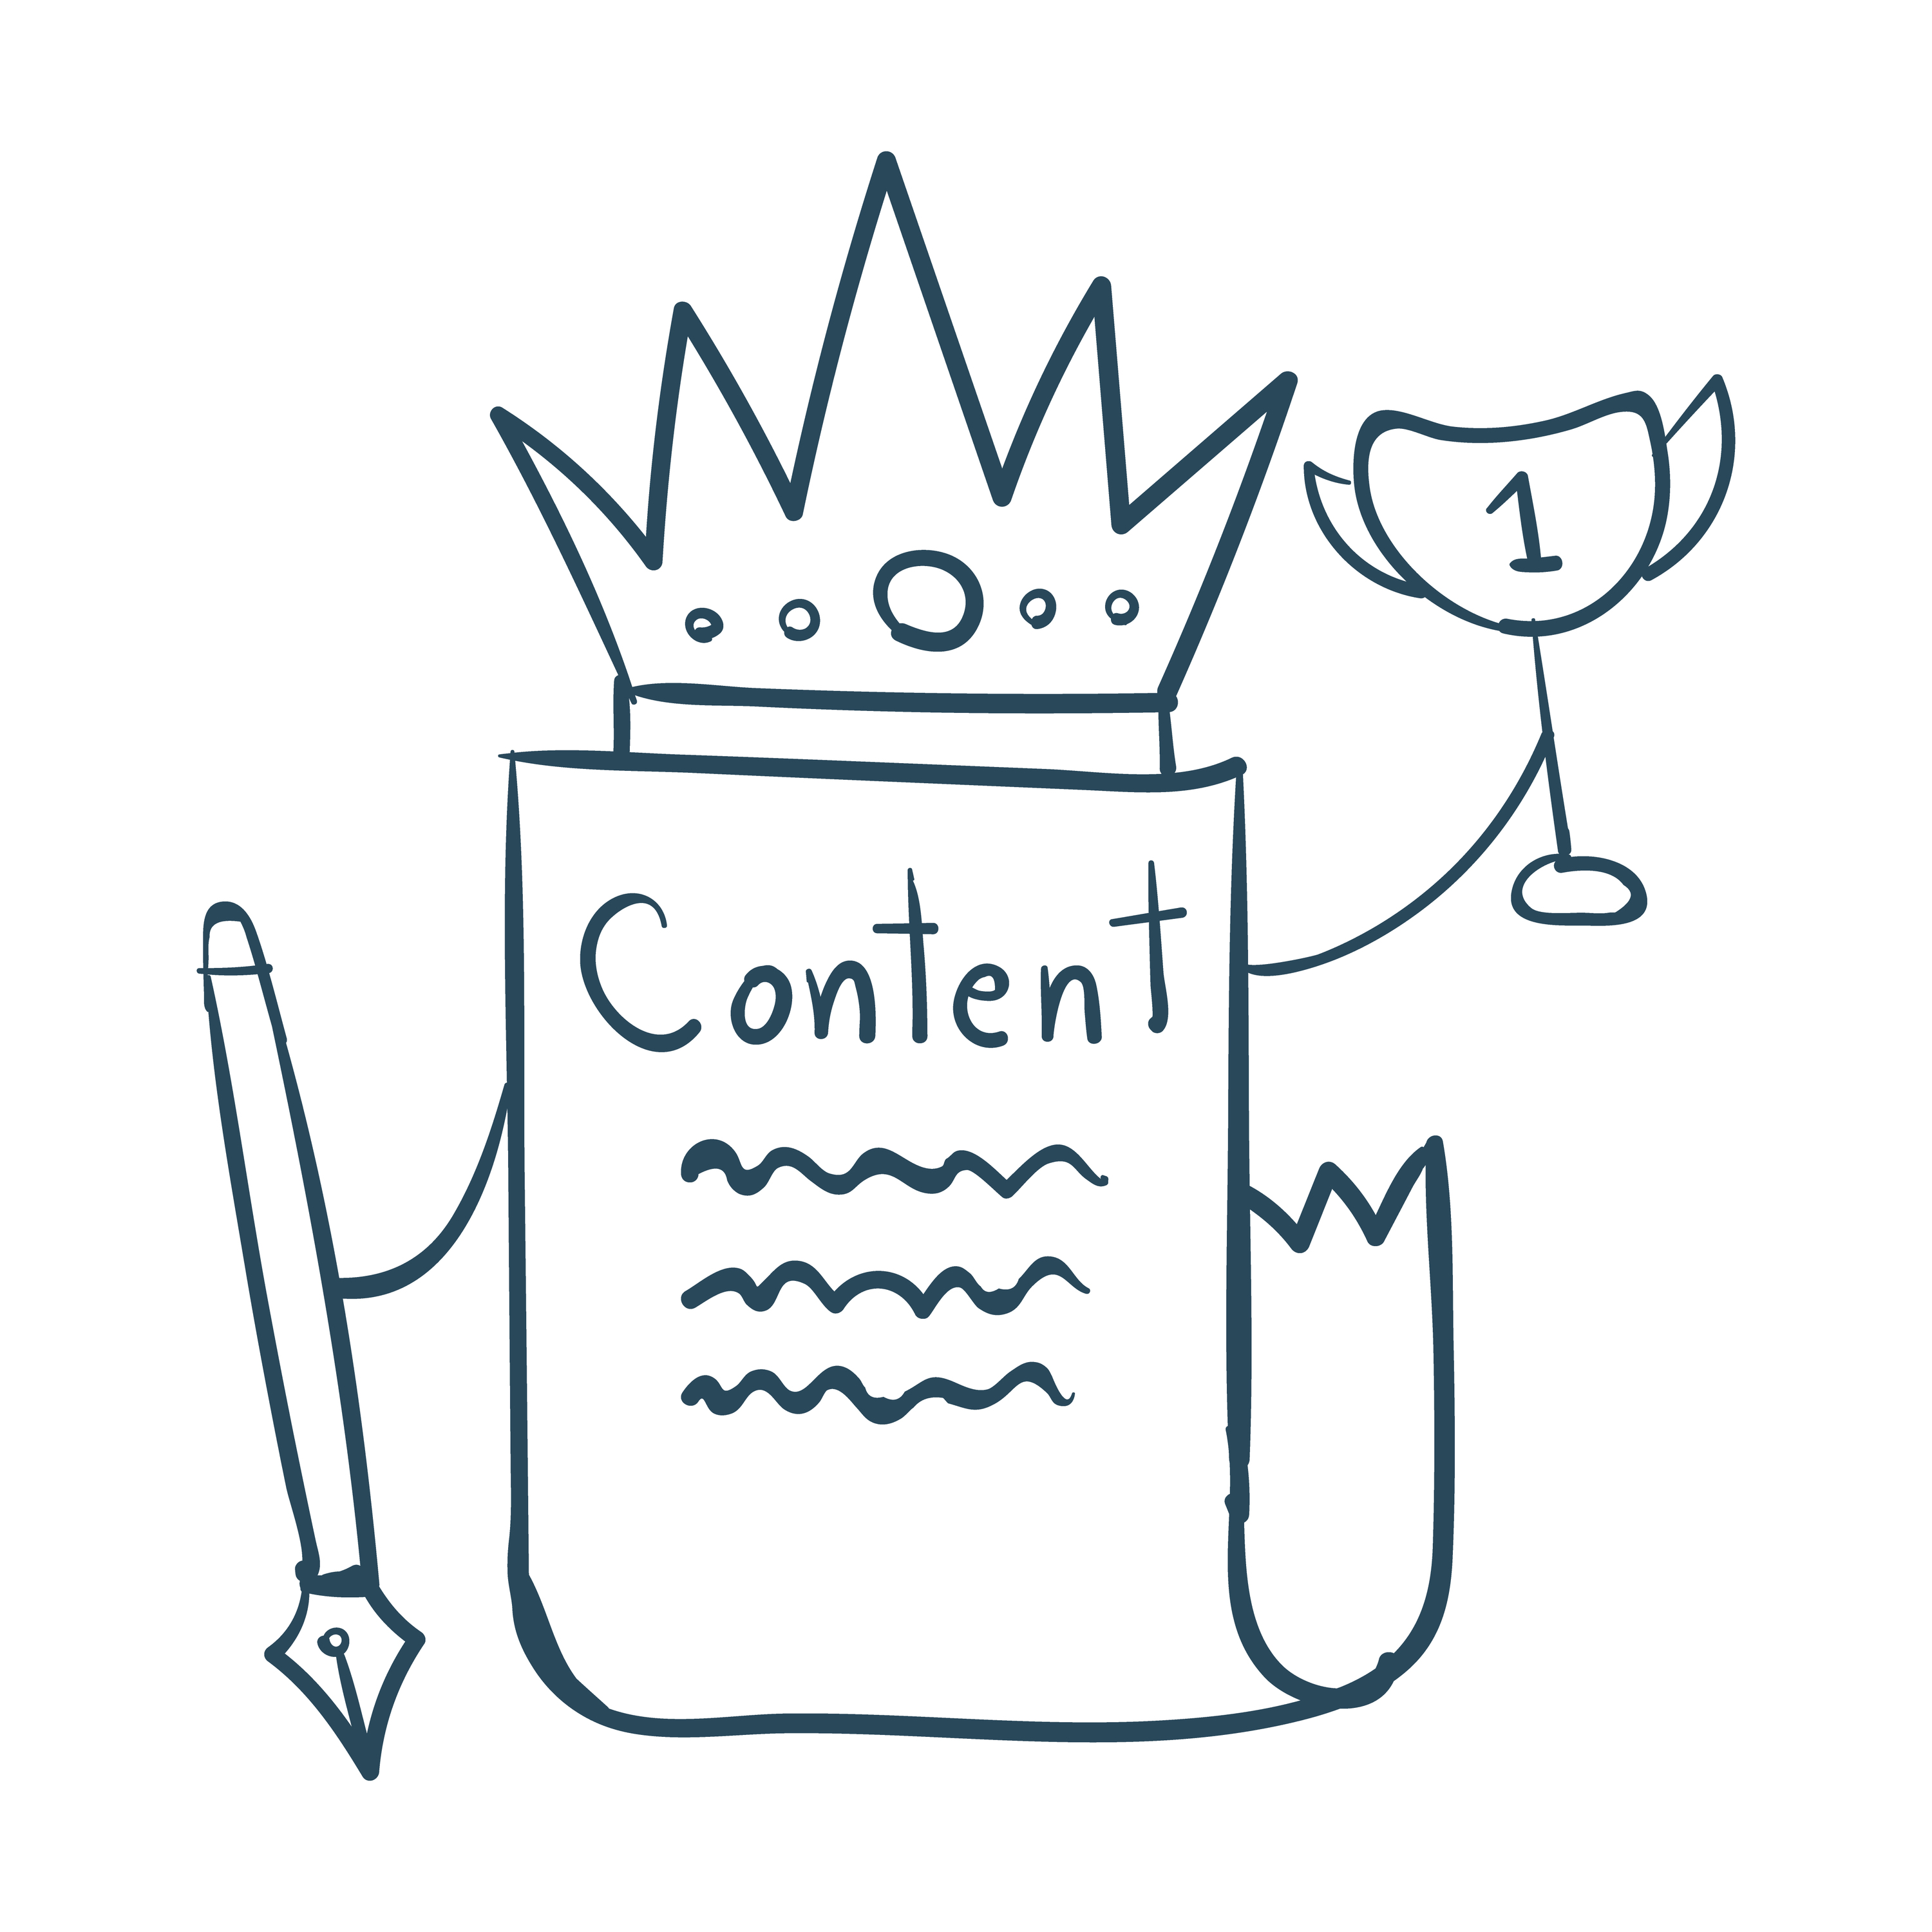 """Content Marketing is no longer the """"Current Marketing Fad."""""""